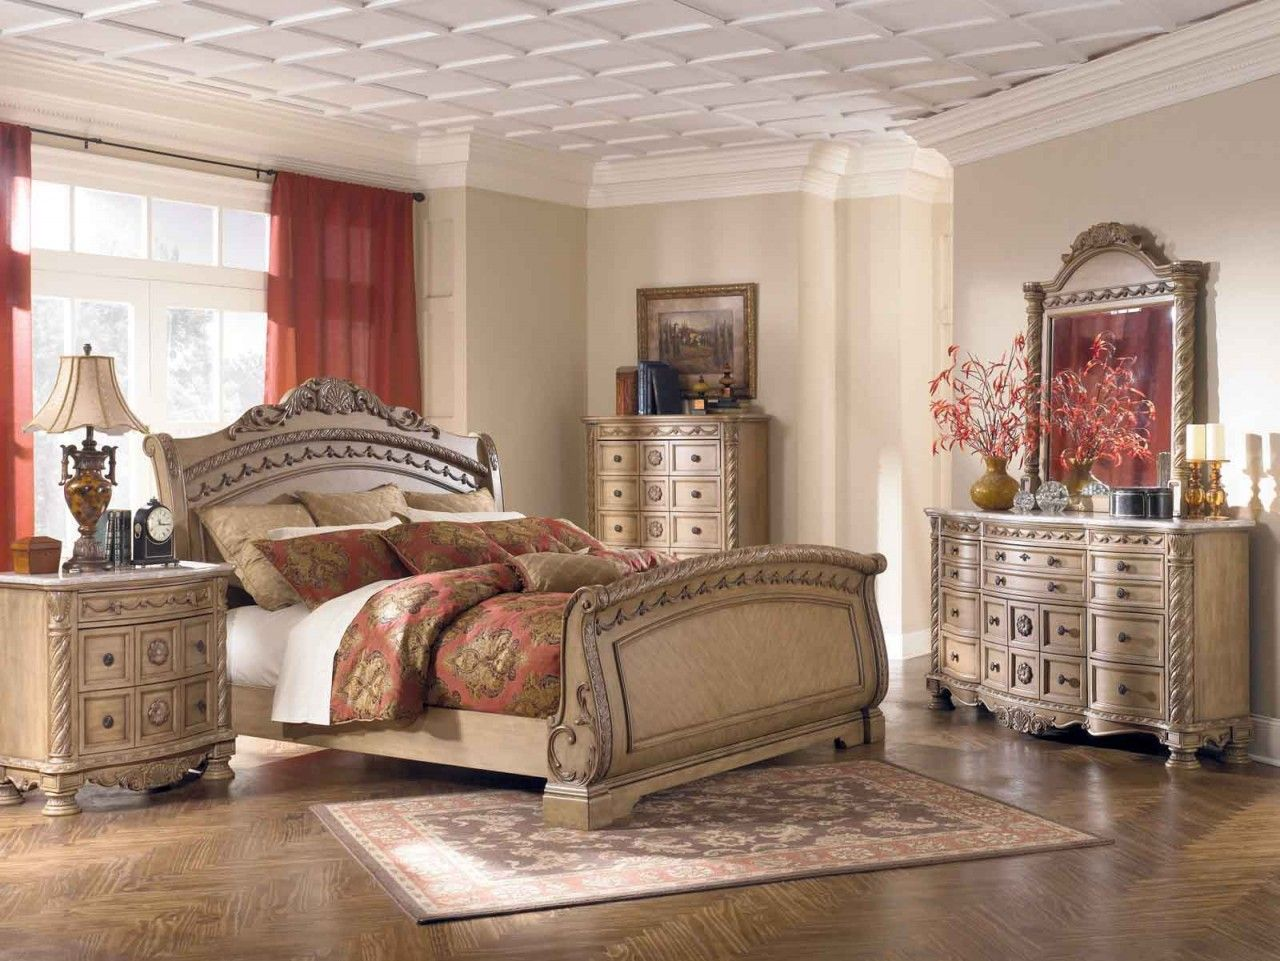 Bedroom Decorative Concept For Bedroom Furniture Prices Ashley Sets Media  Cooler Inc Funiture Best Website Striking. Bedroom Decorative Concept For Bedroom Furniture Prices Ashley